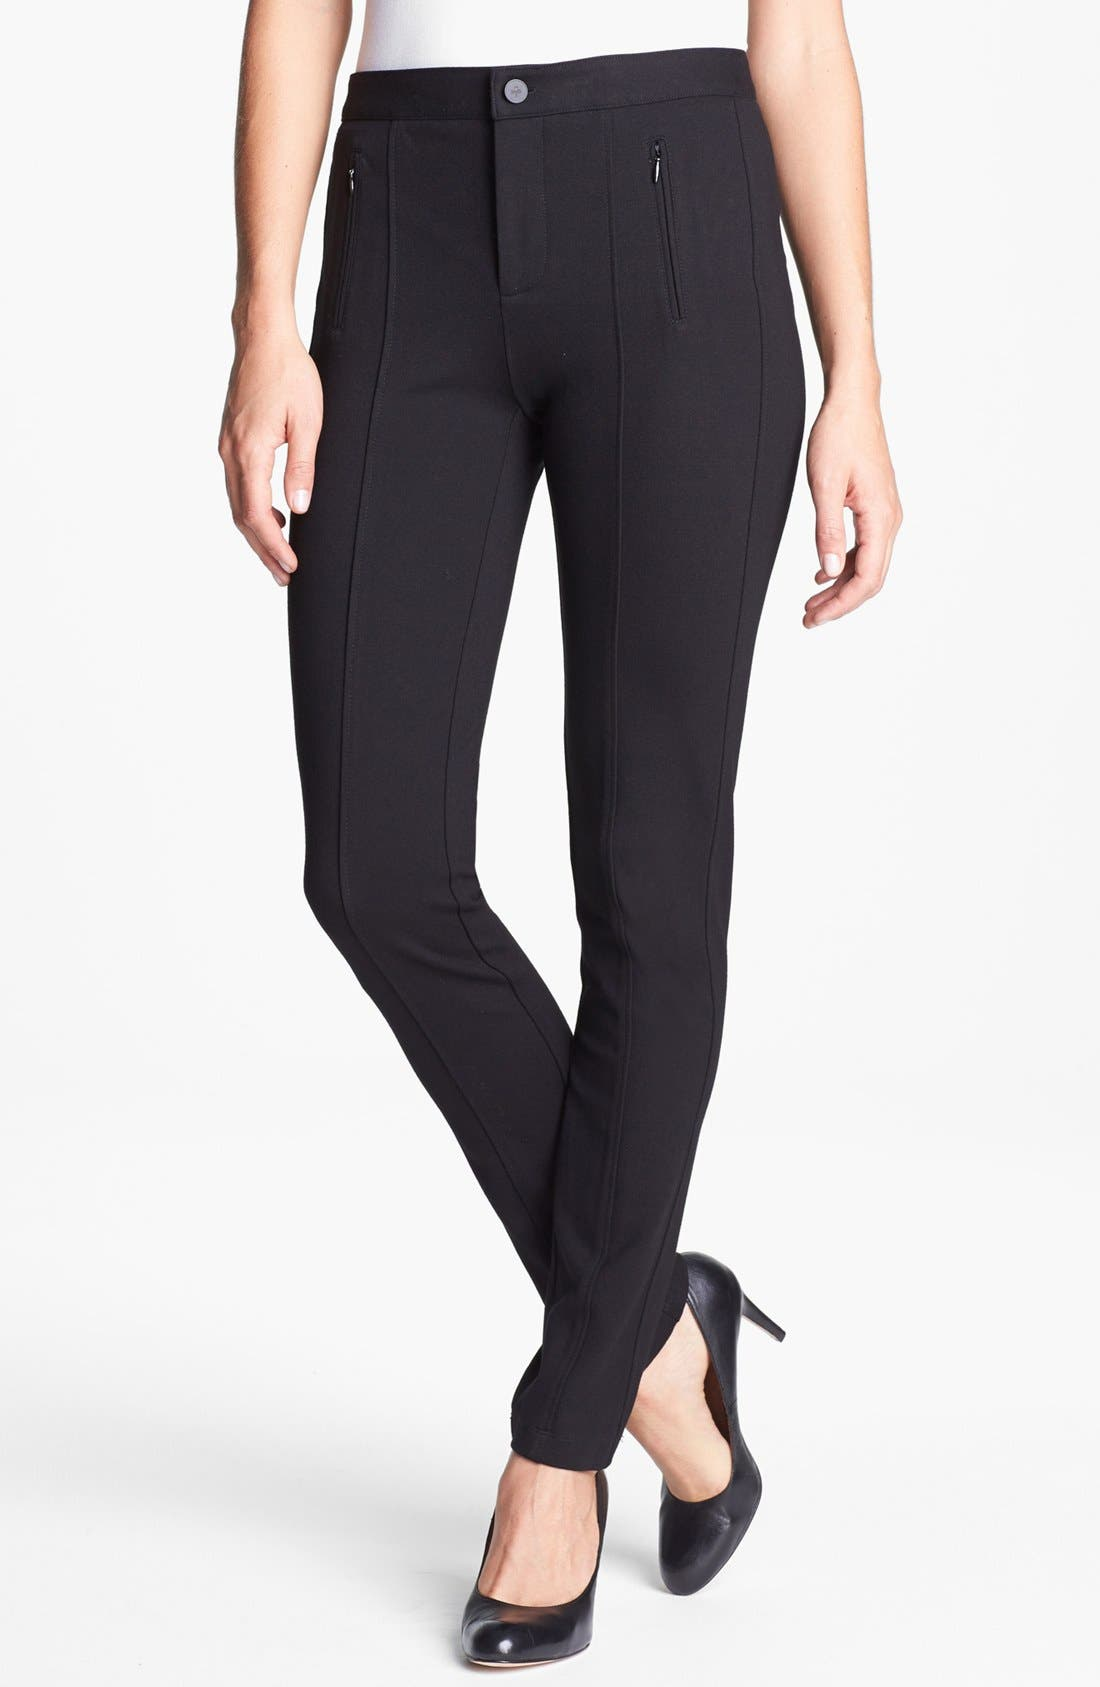 Alternate Image 1 Selected - NYDJ 'Ski' Zip Pocket Ponte Knit Pants (Petite)